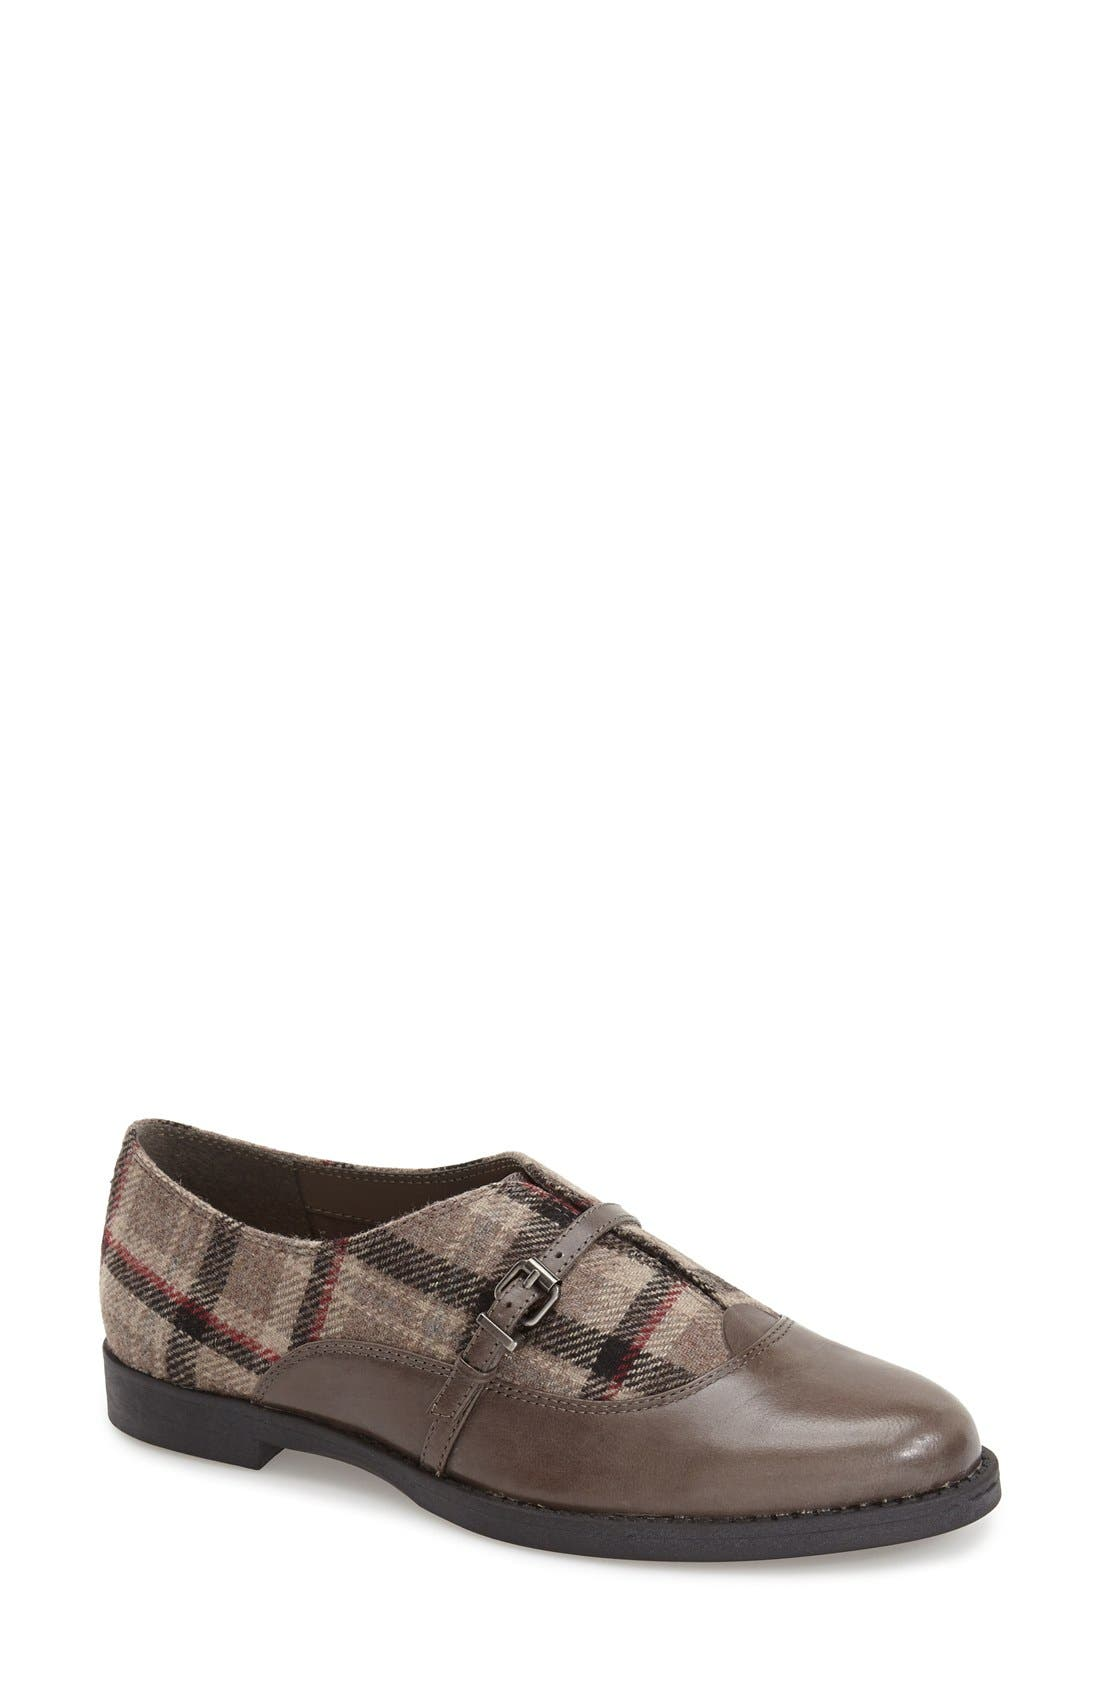 Main Image - Bella Vita 'Reese' Slip On Oxford (Women)